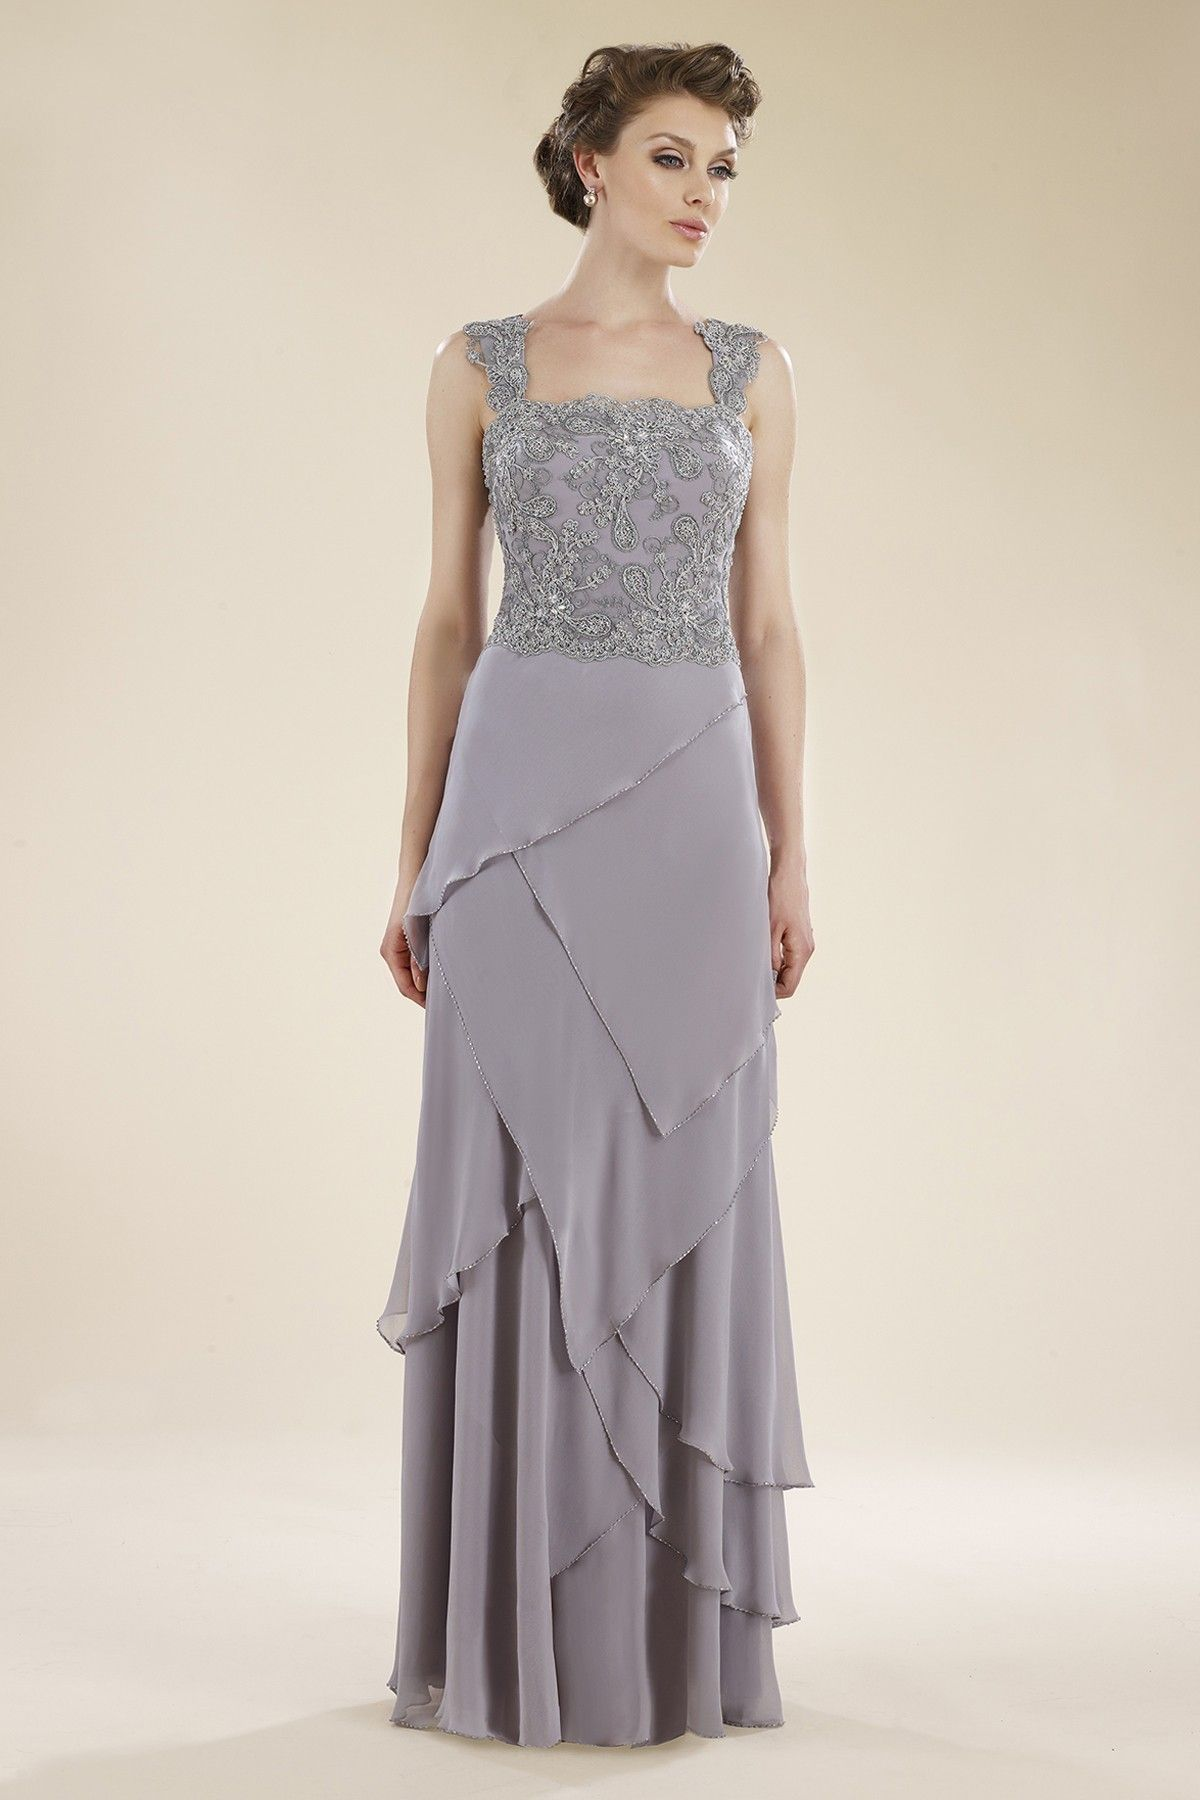 Wedding dresses for mother of the bride  SheathColumn Straps Floor Length LaceChiffon Crystal Pink